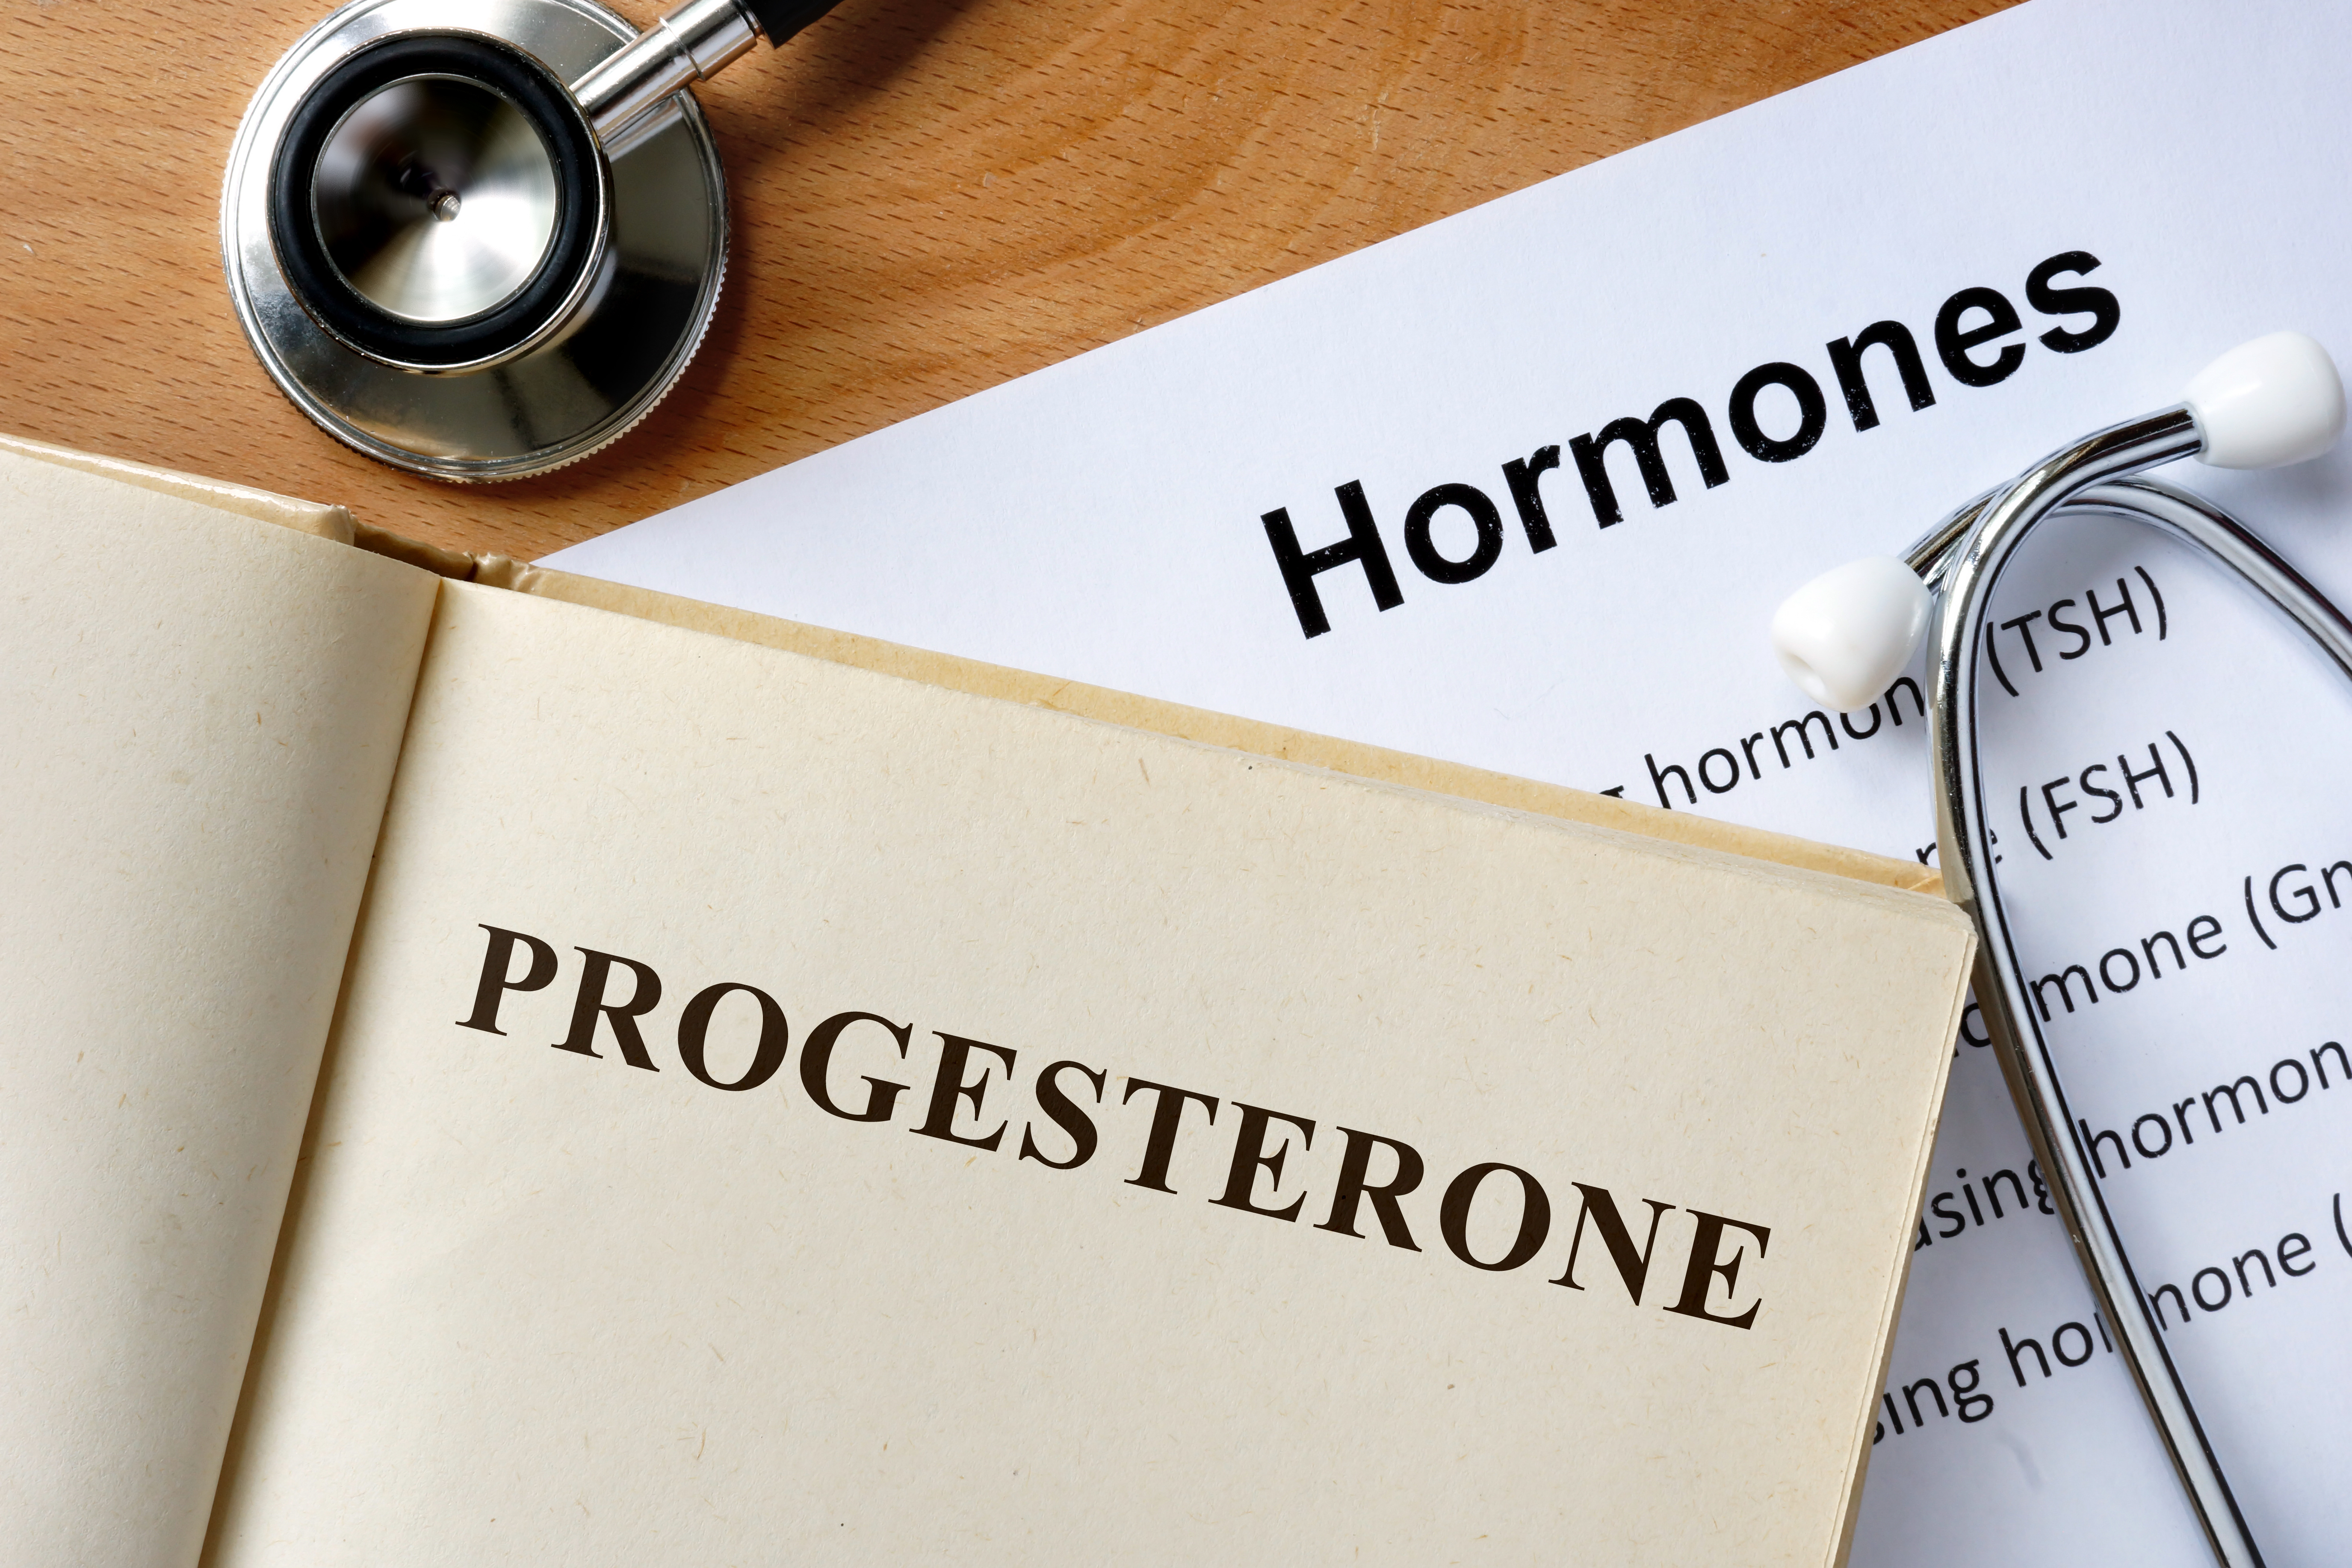 Progesterone  word written on the book and hormones list.